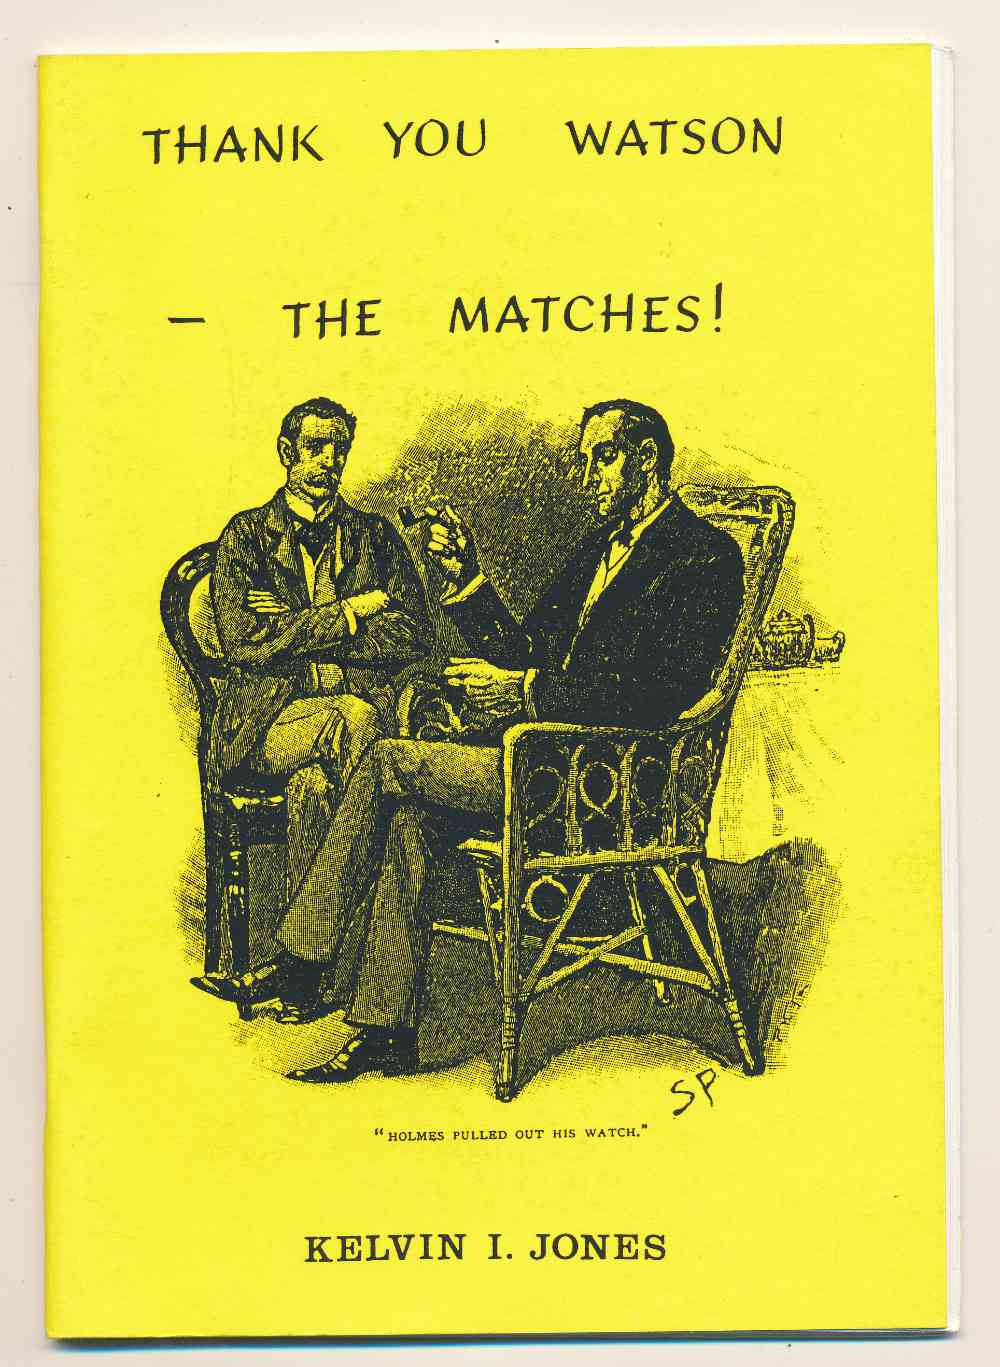 Thank you Watson - the matches!